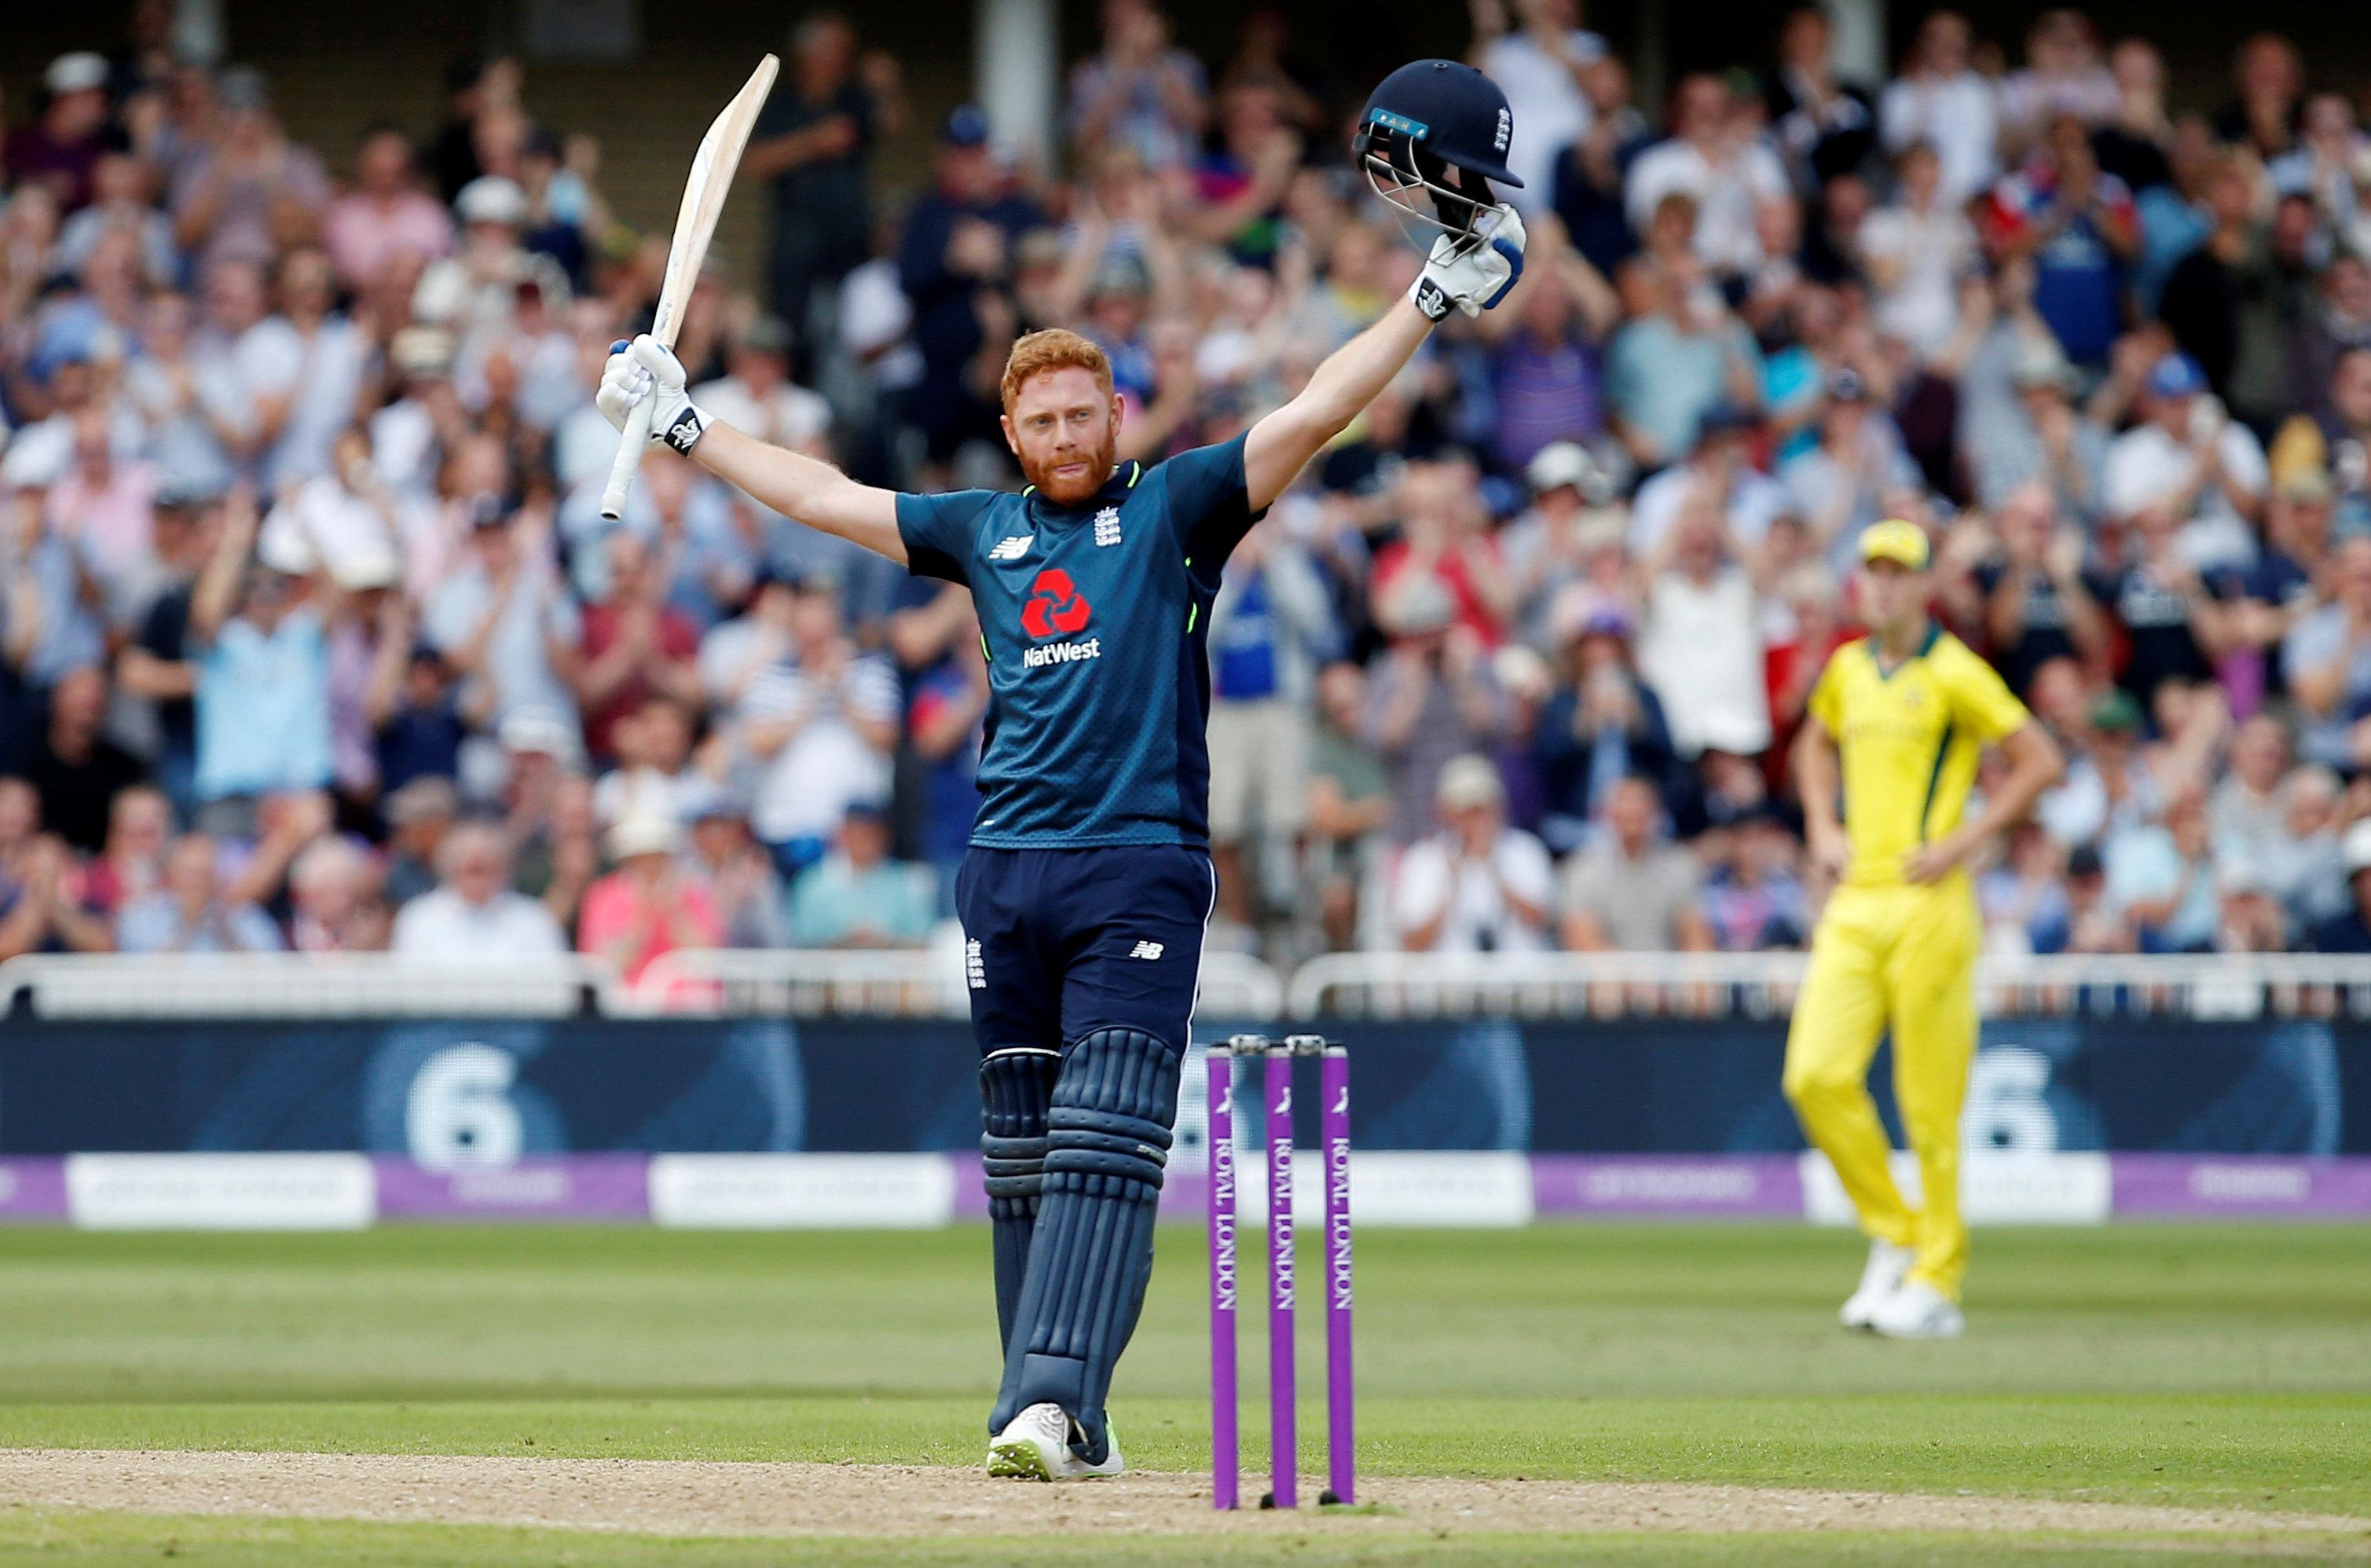 Jonny Bairstow also battered the boundaries with a scintillating century